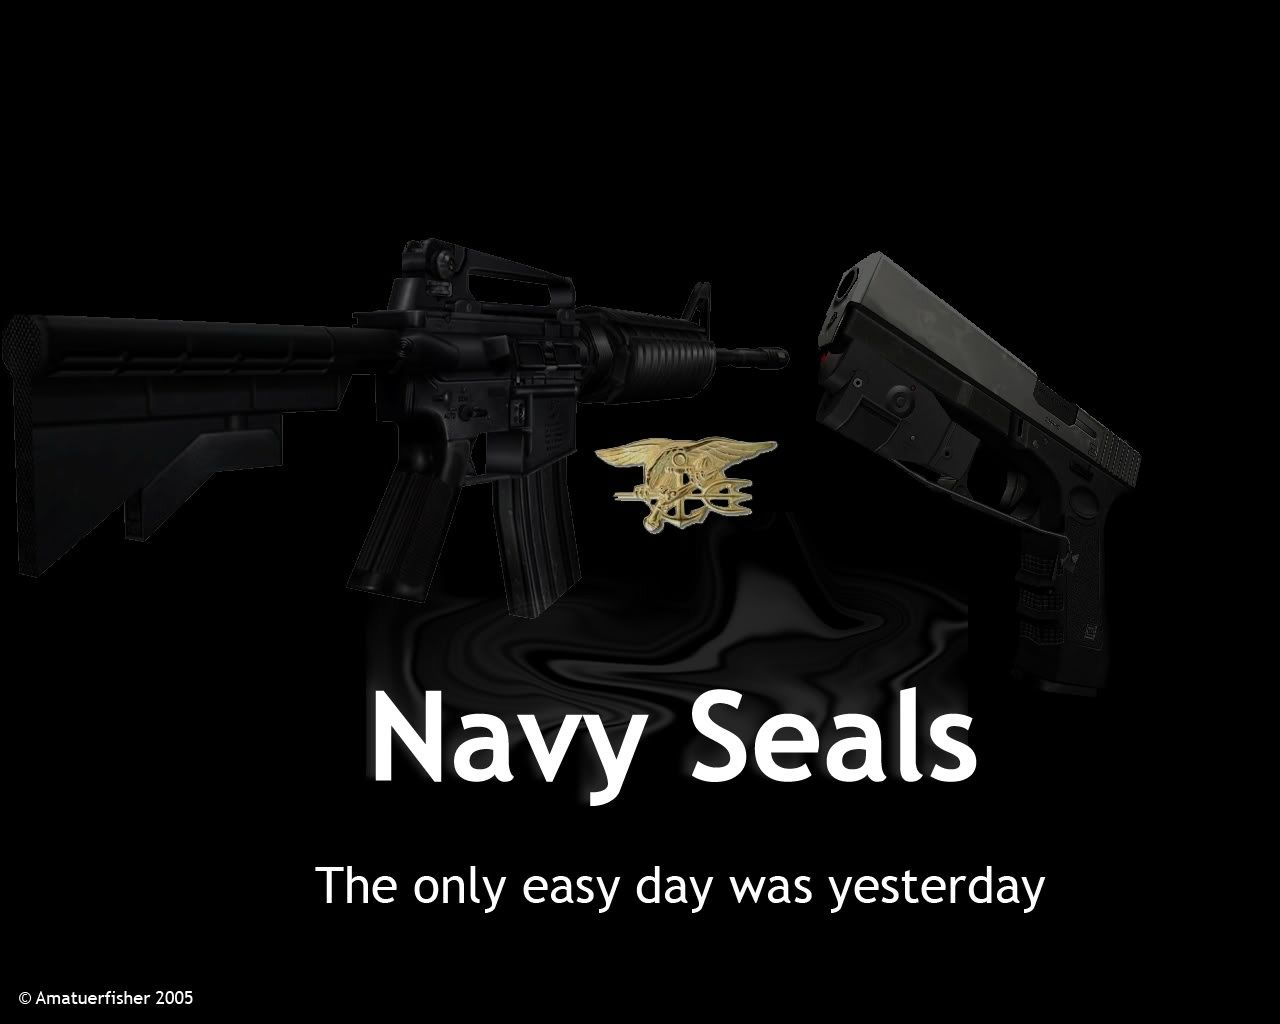 Http Arts Wallpapers Com Military Navy Seal Img145 Jpg Forcas